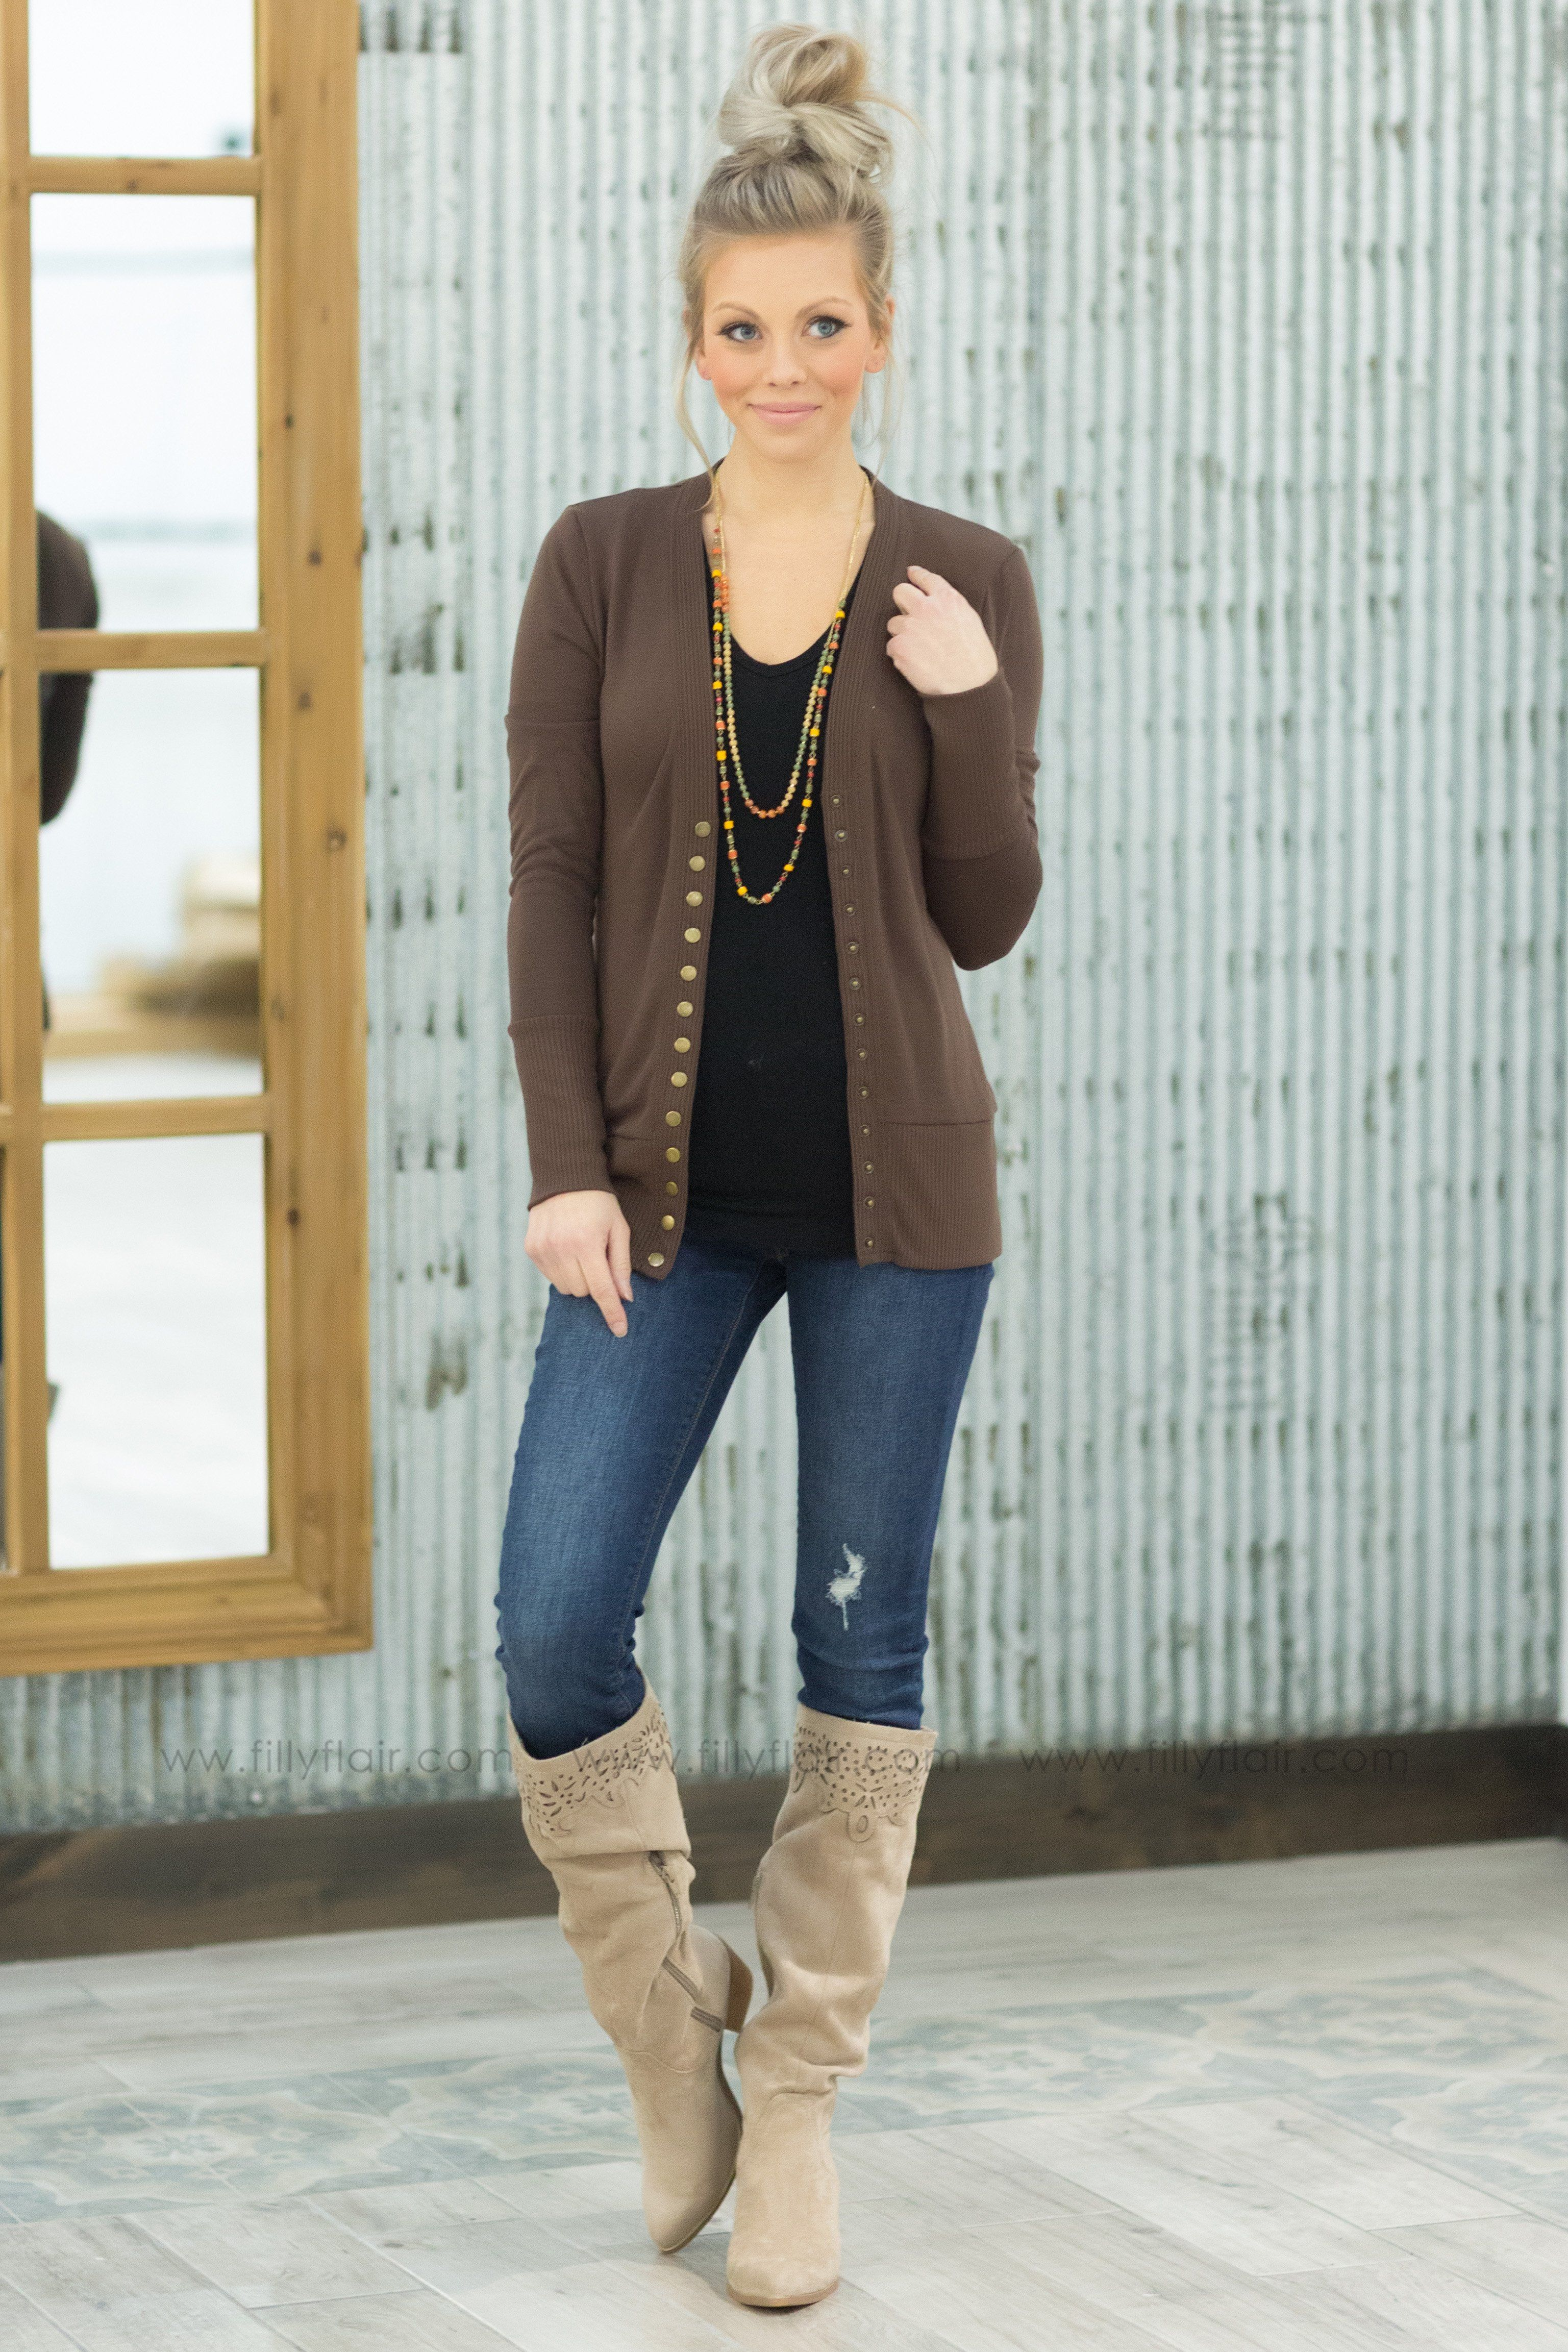 The Story of Us Button Up Cardigan in Brown* - Filly Flair